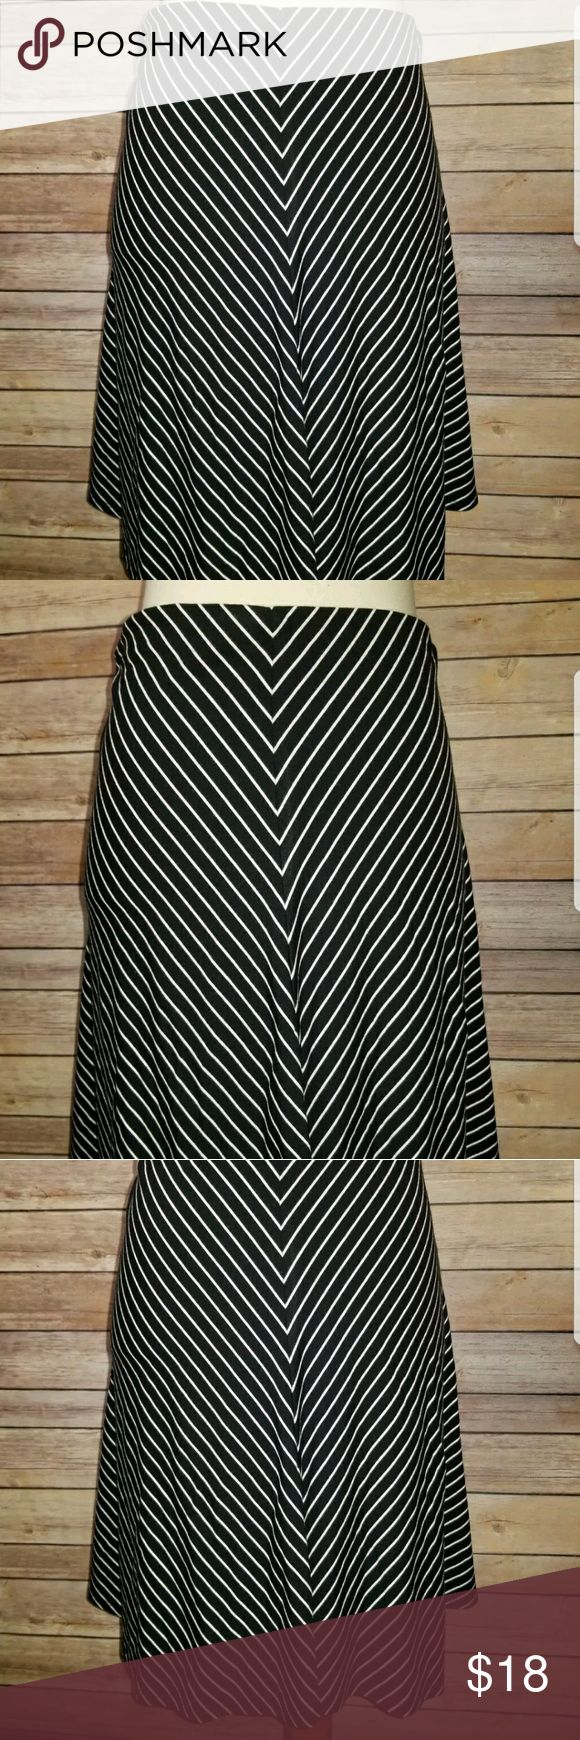 "Ann Taylor A Line Skirt Sp Petites Ann Taylor Skirt  Black and White Striped Jersey Knit Skirt  A Line Fit  Size Sp  Measurements  Waist 14""  Length 19""  94% Rayon, 6% Spandex  Machine Wash Cold, Gentle Cycle, Dry Flat  In Good Condition  From a Smoke Free Home Ann Taylor Skirts A-Line or Full"